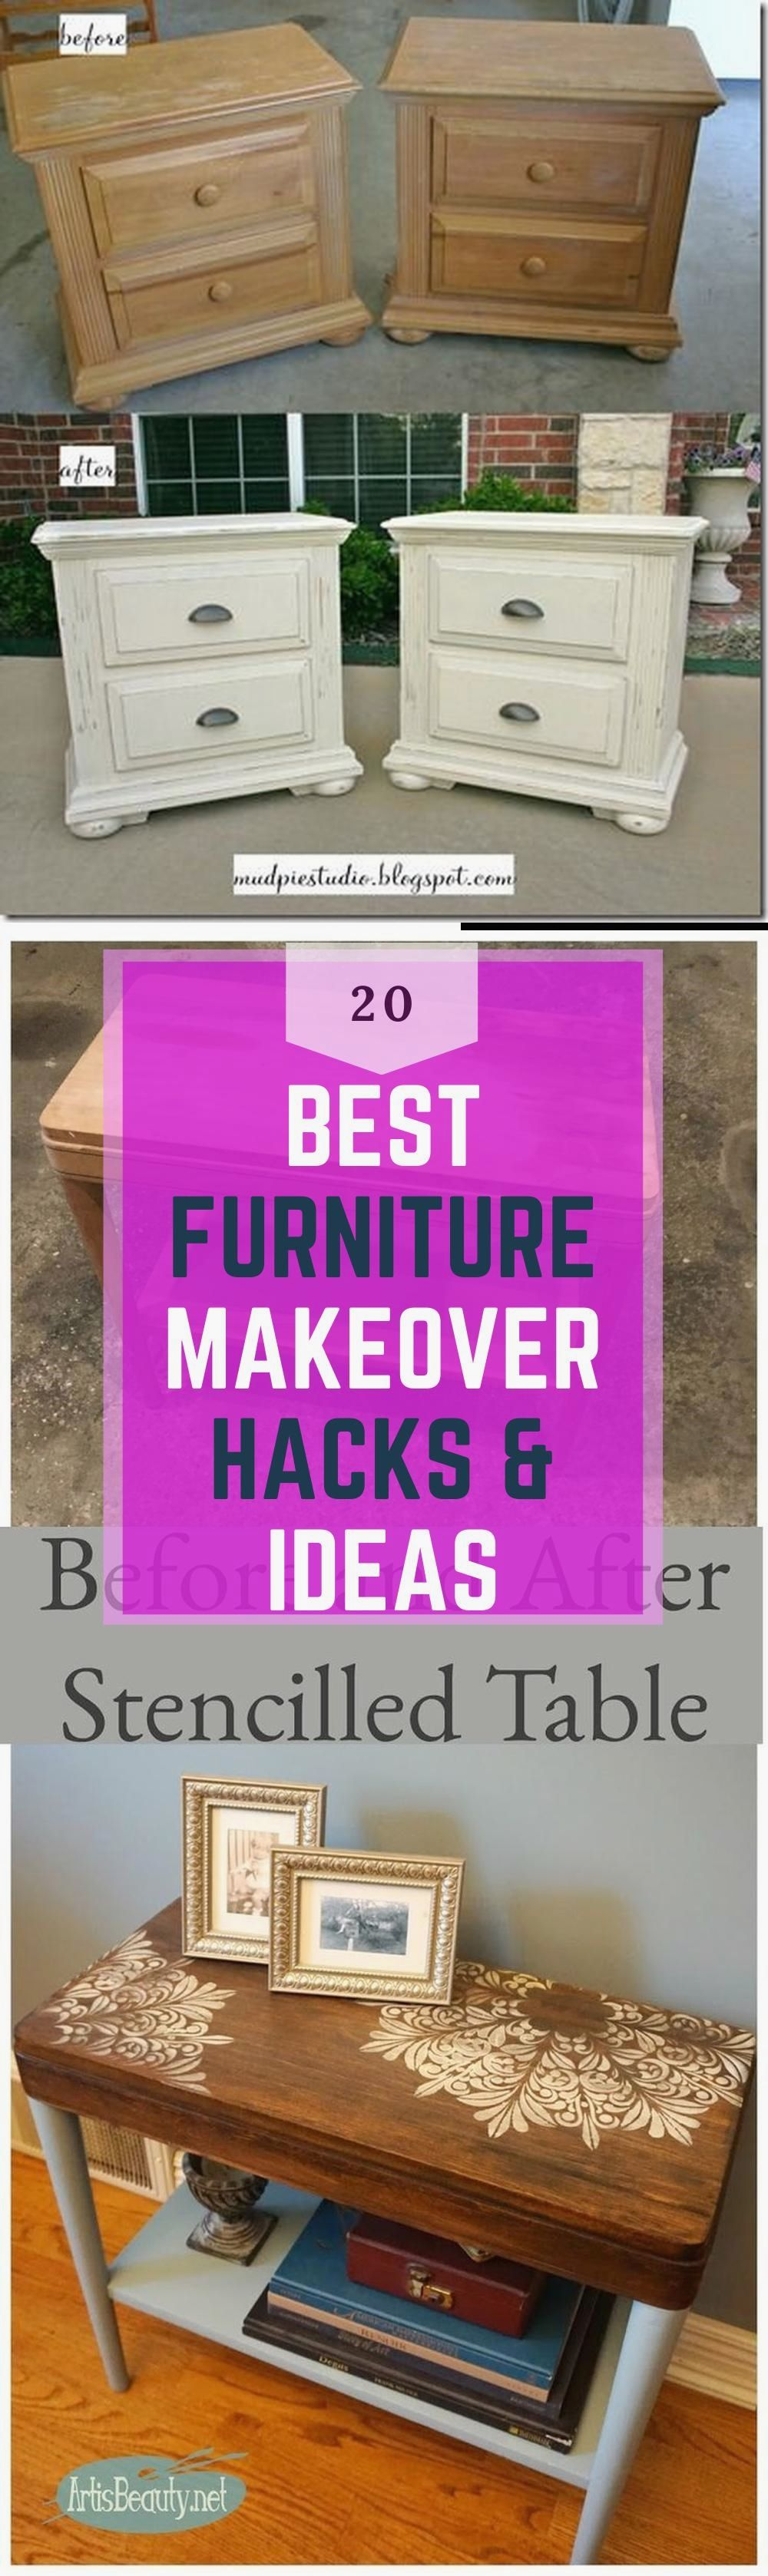 Cheap Furniture Makeover Ideas In 2021 Diy Furniture Renovation Furniture Makeover Cheap Furniture Makeover